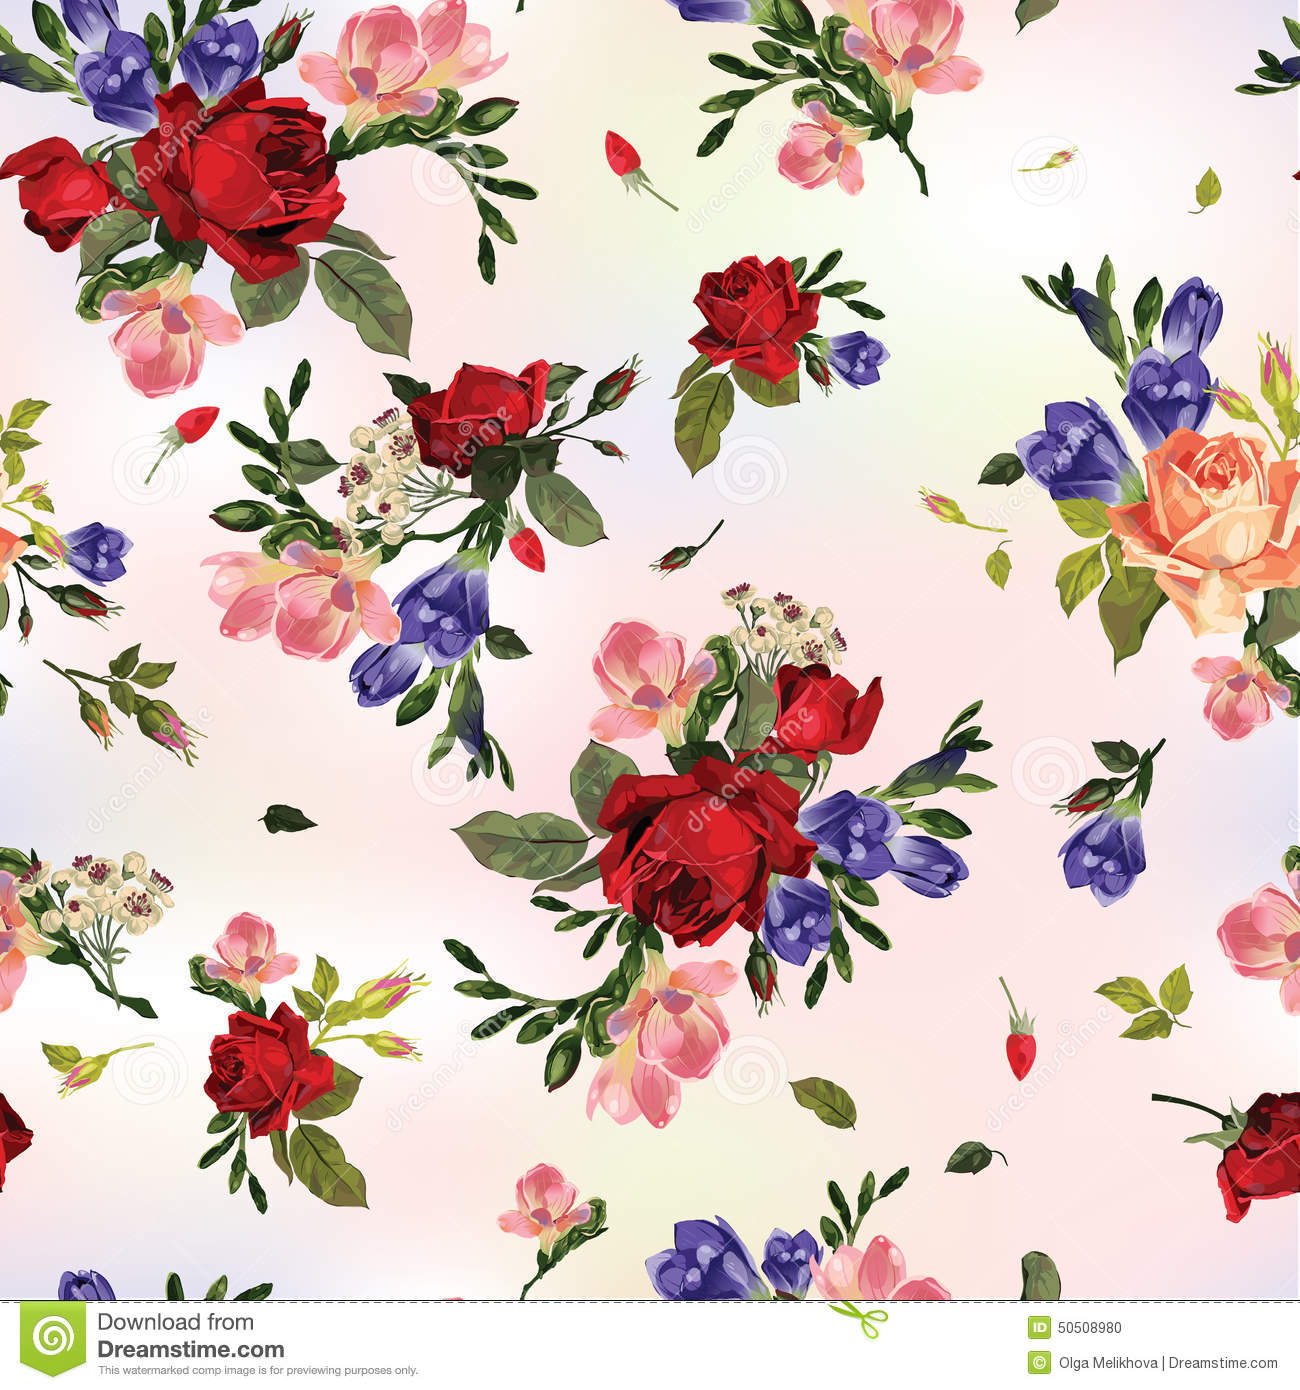 Abstract seamless floral pattern with red roses and pink and blu